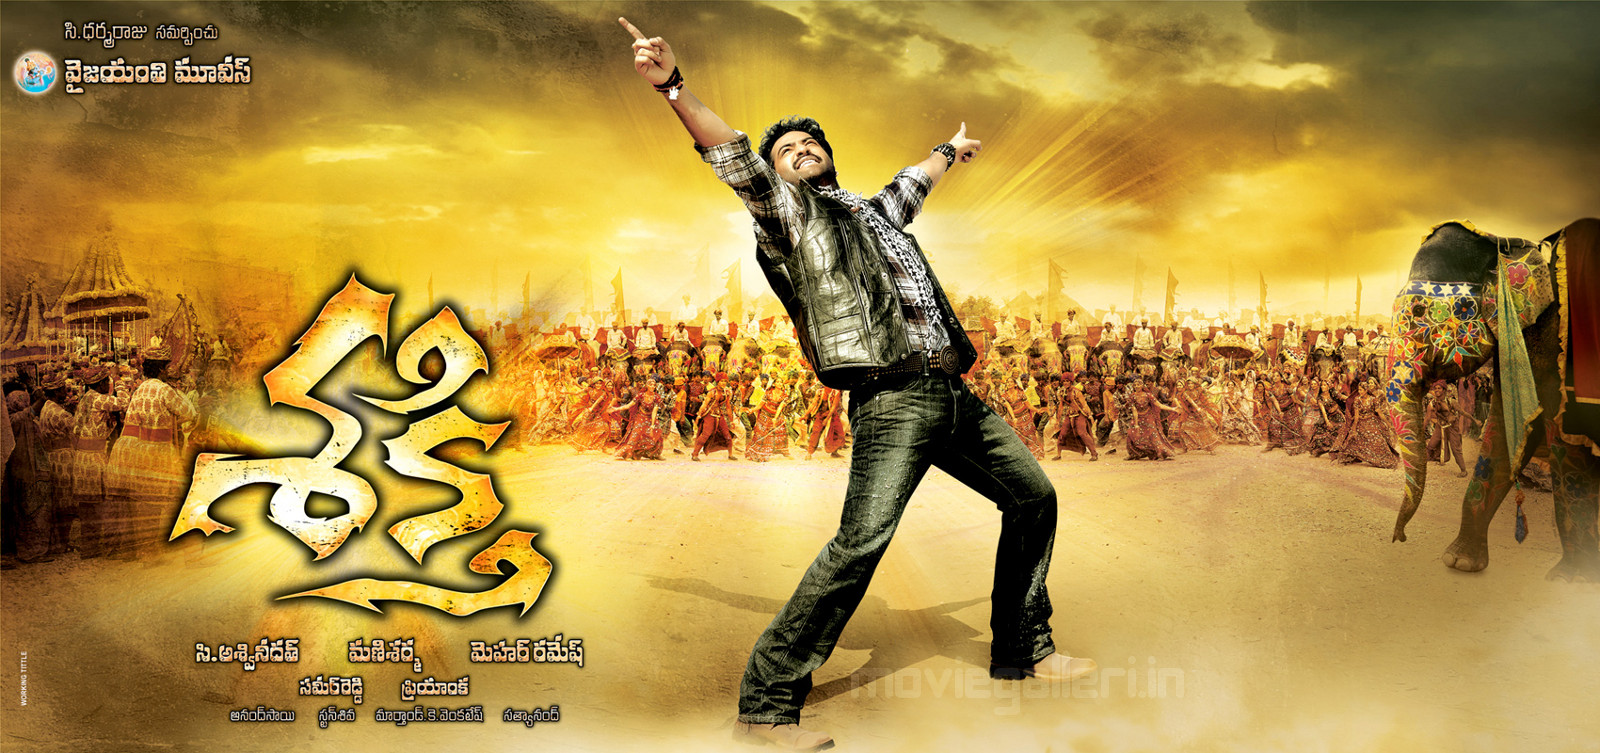 shakti telugu movie high resolution wallpapers, jr ntr shakti latest